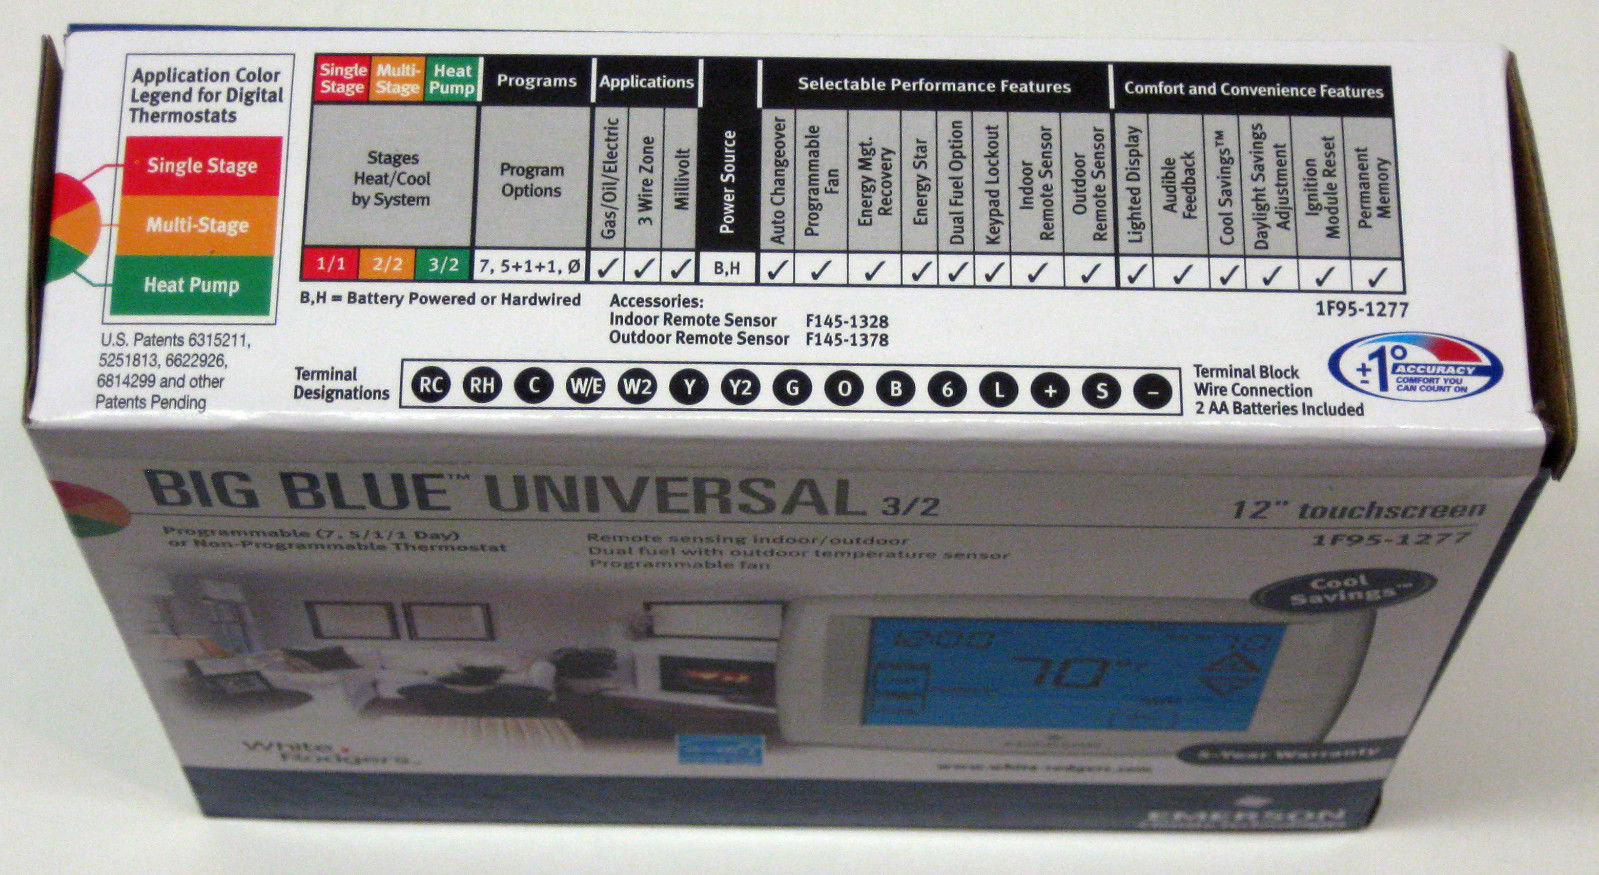 """White Rodgers 1F95-1277 Emerson Big BLUE 12/"""" Touchscreen Programmable Thermostat"""